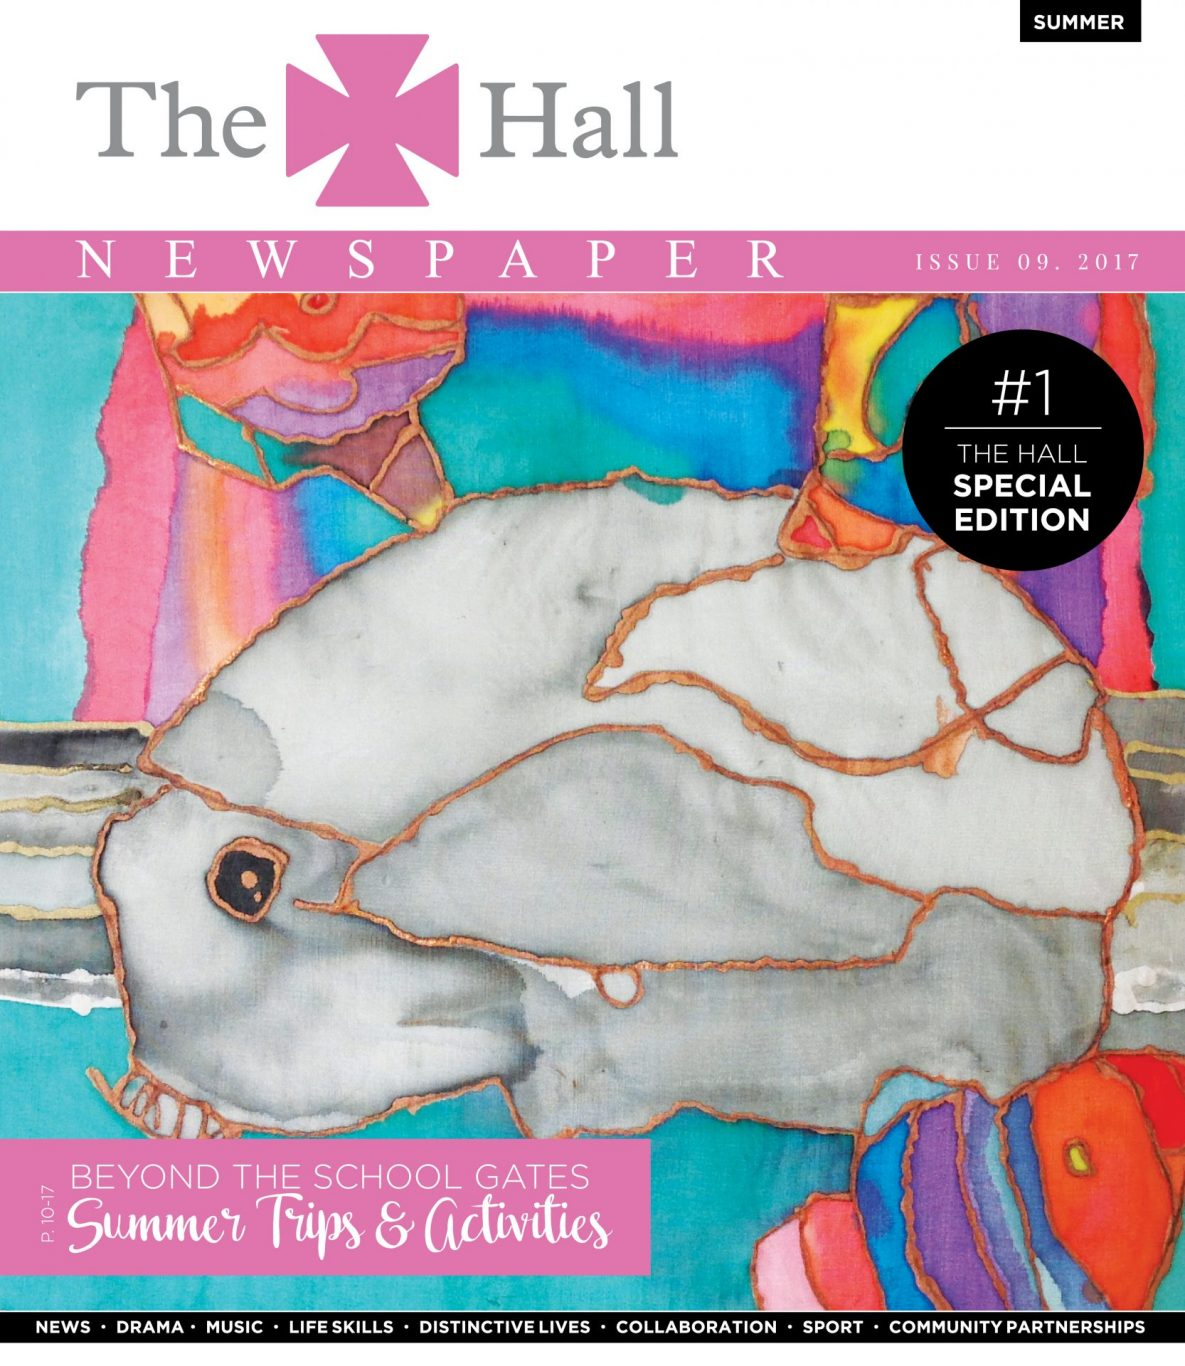 The Hall School Newspaper Summer Term 2017